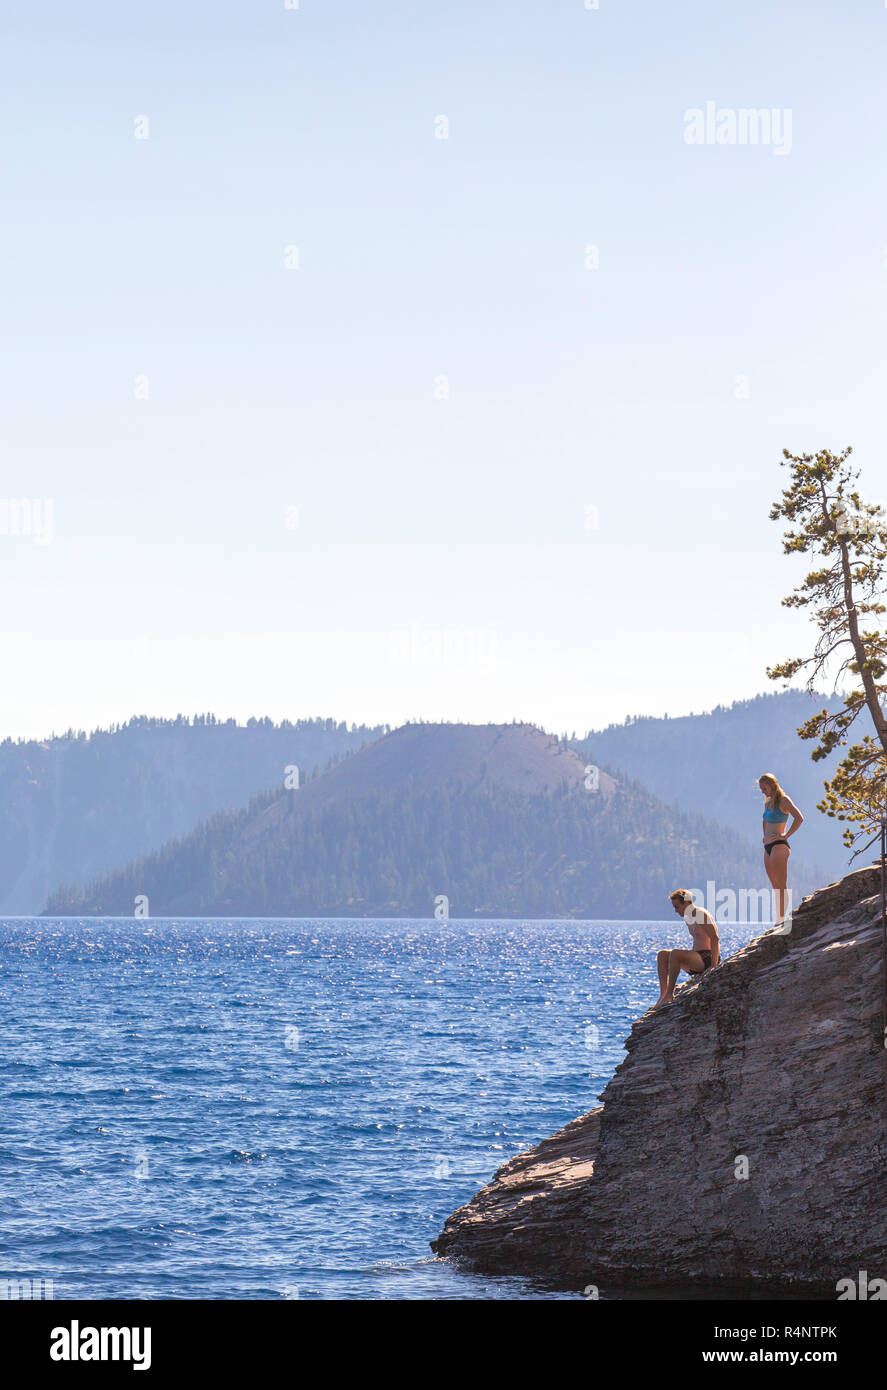 Distant view of man and woman in swimwear on shore of Crater Lake, Oregon, USA - Stock Image